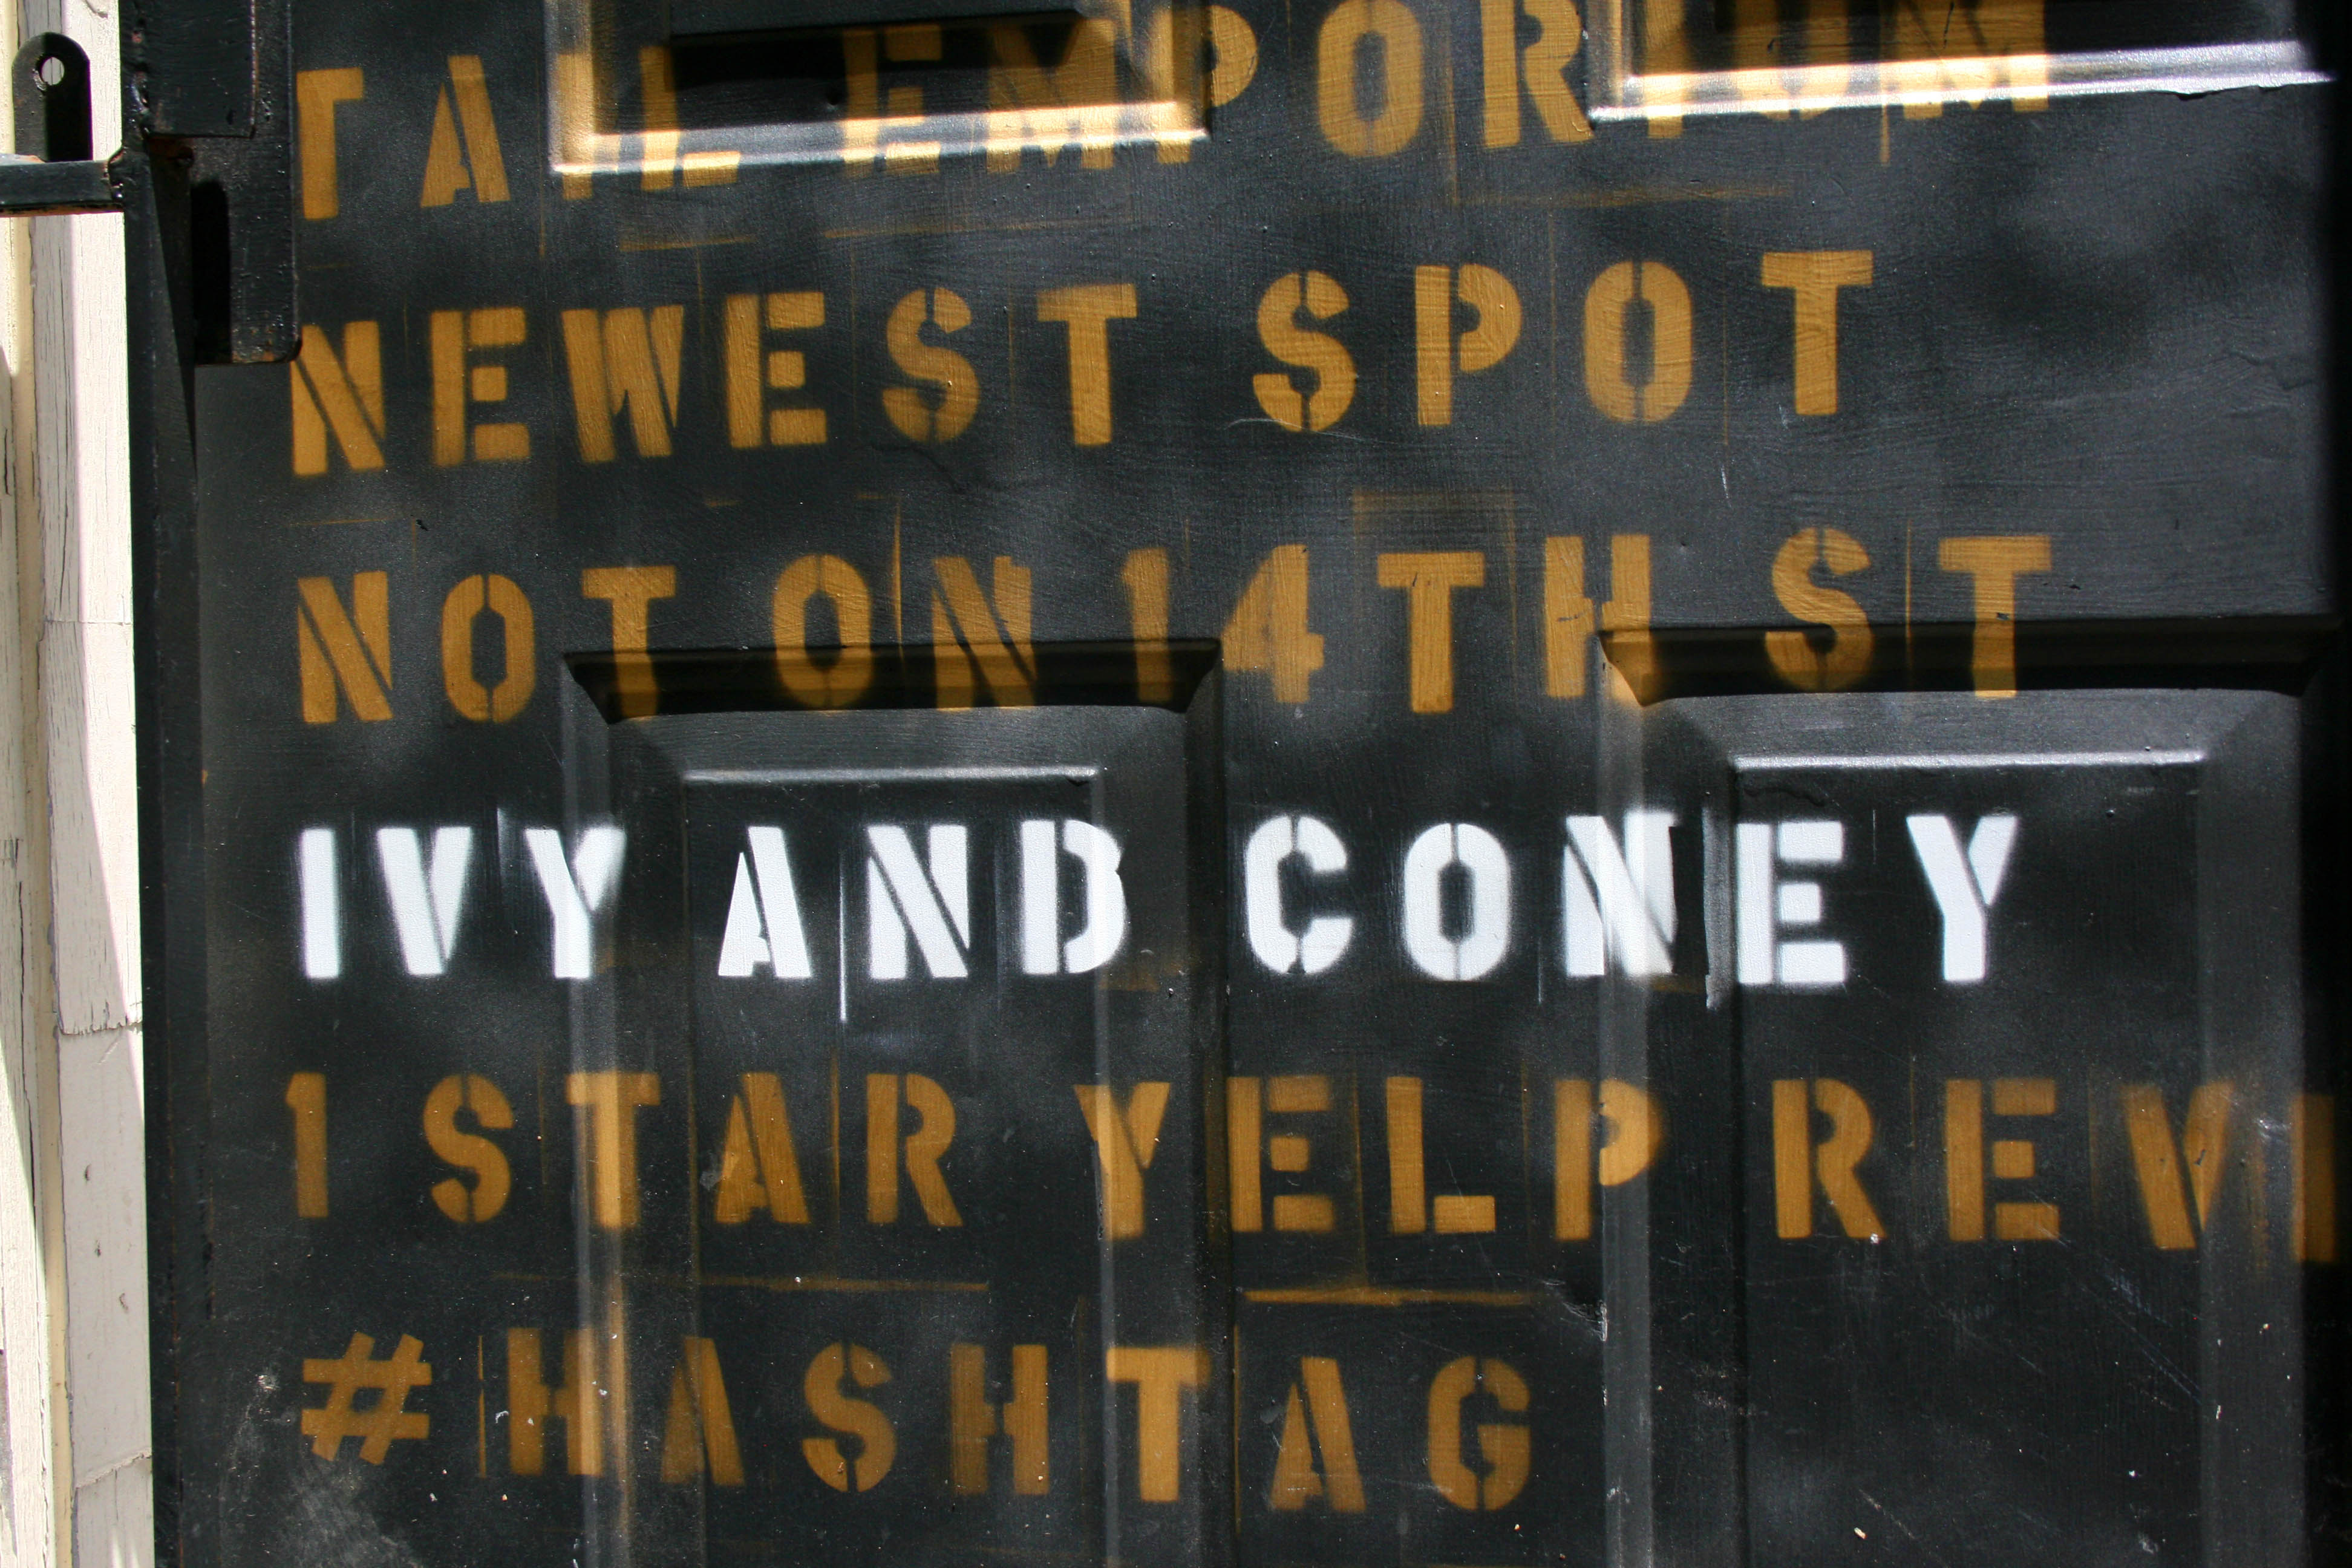 Ivy and Coney